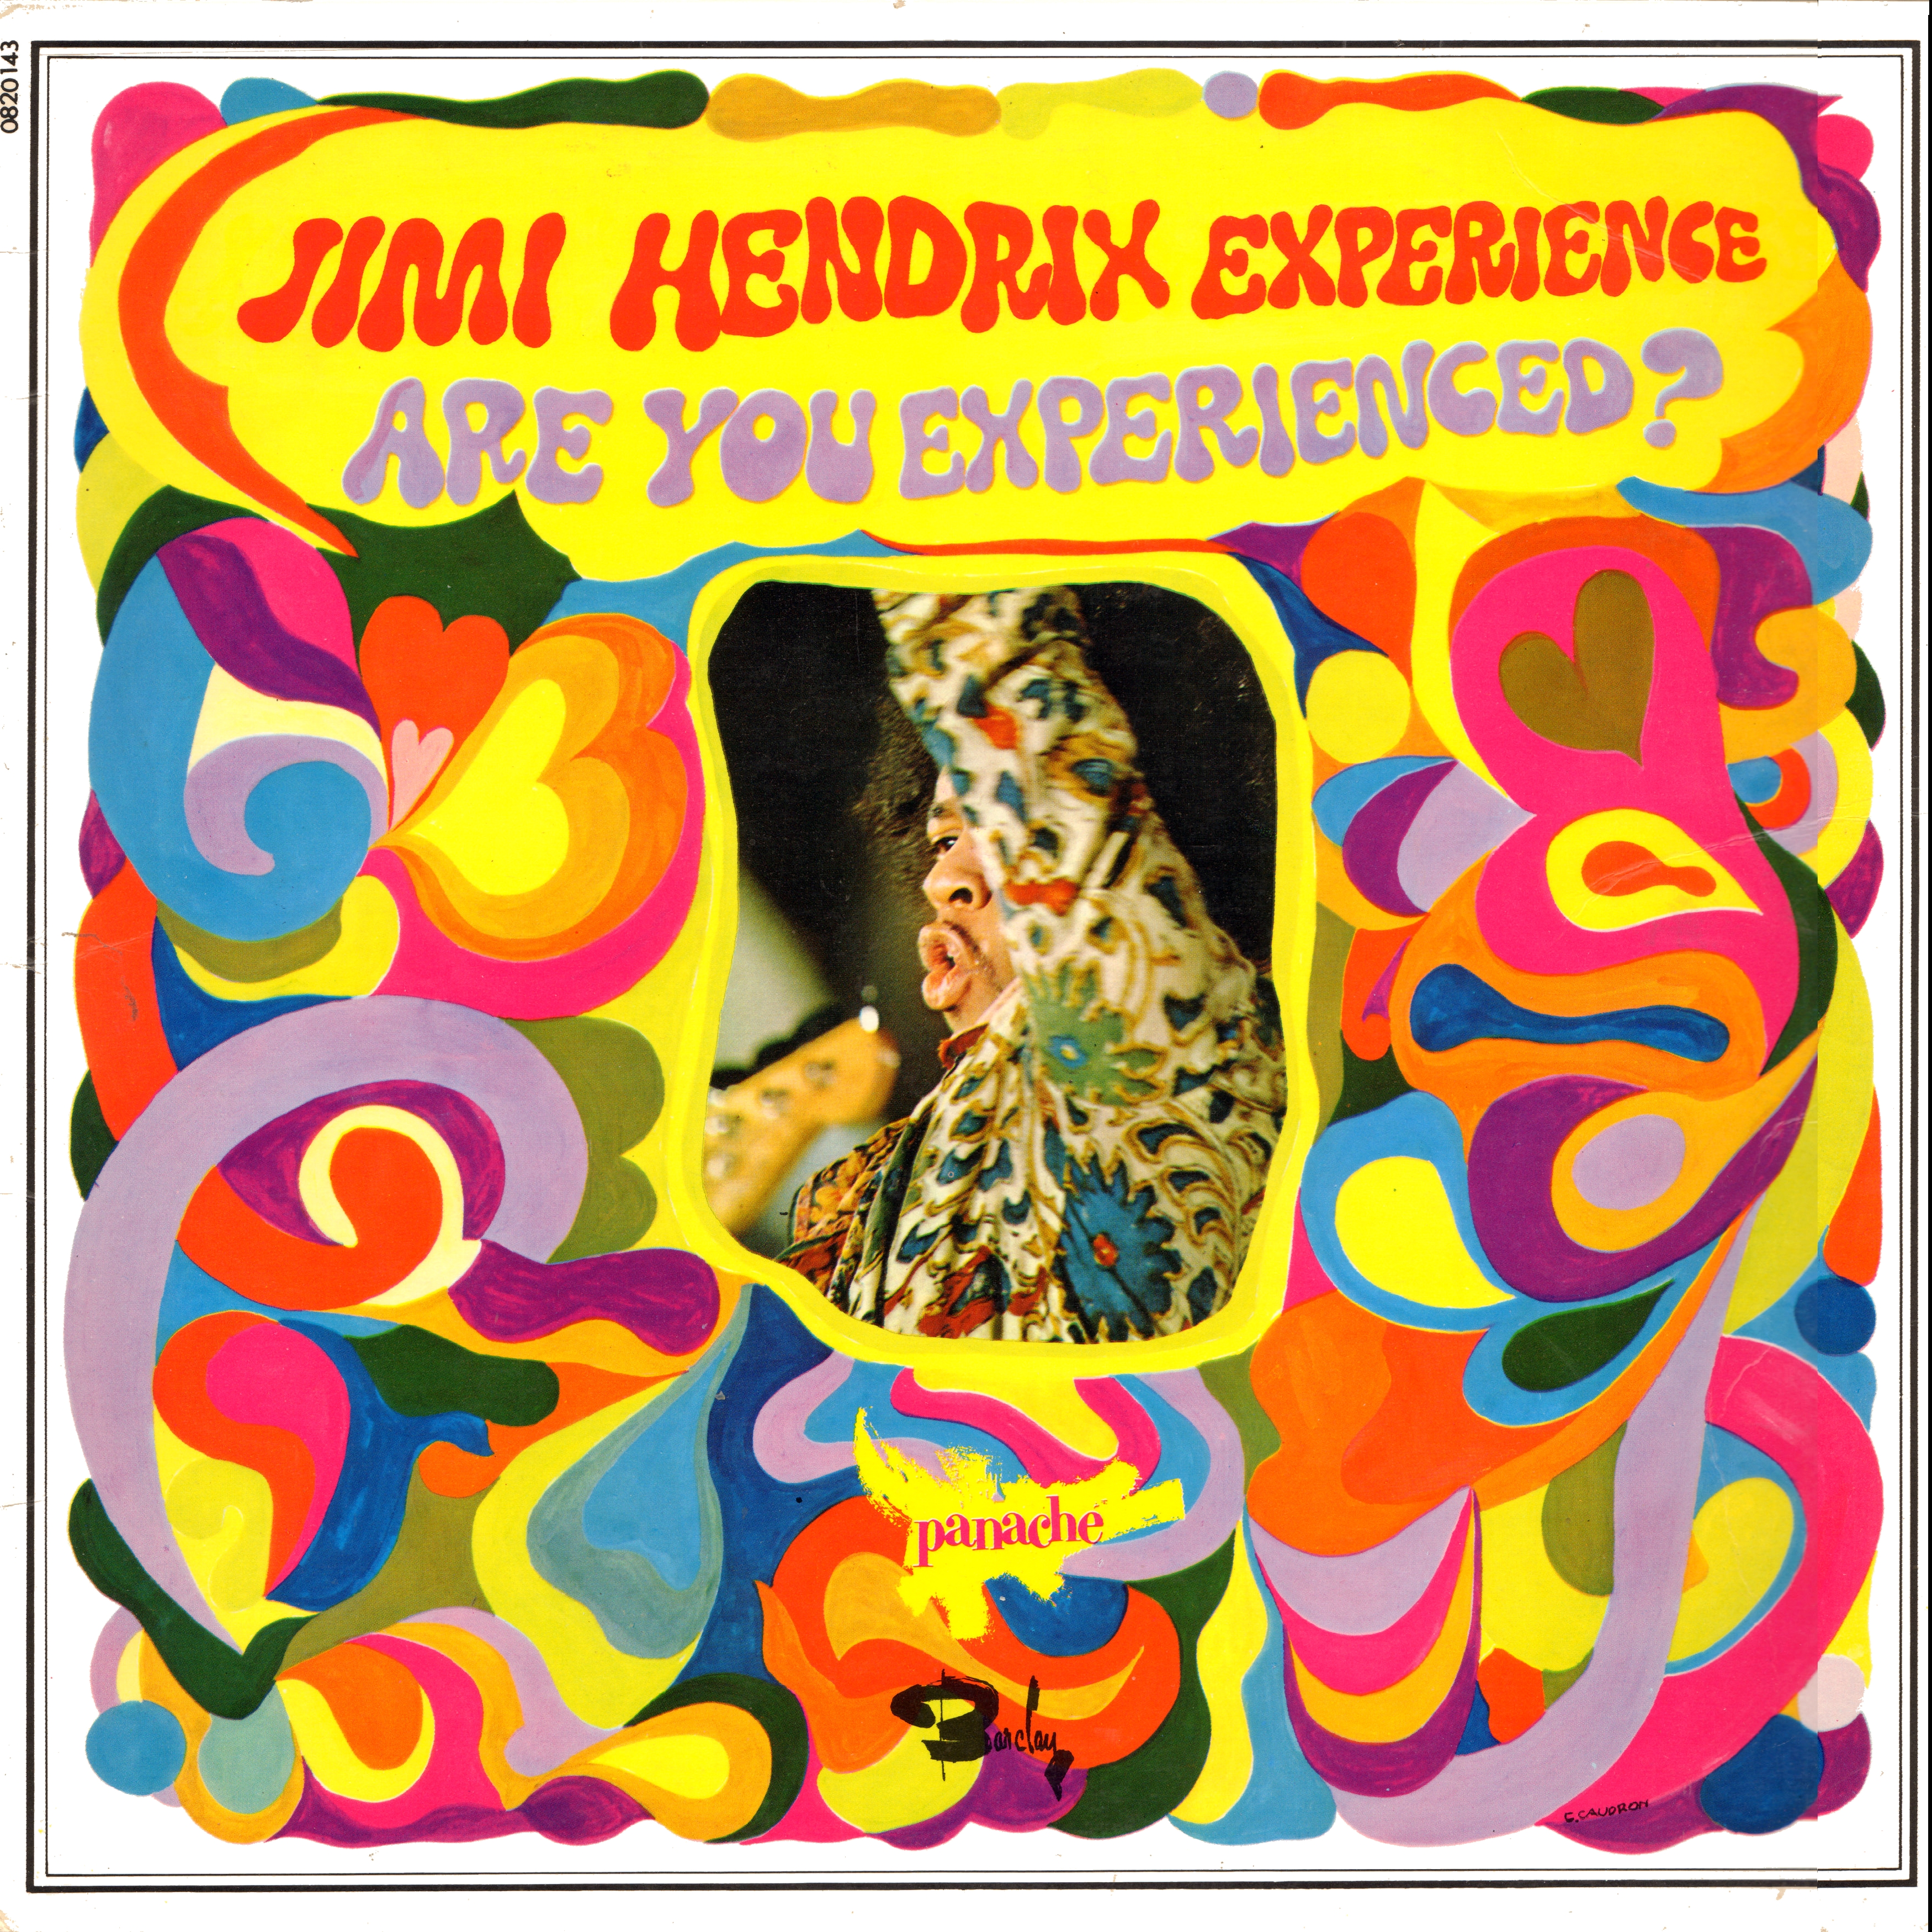 Discographie : Made in Barclay - Page 5 Jimi%20Hendrix%20-%20Are%20You%20Experienced%20-%20Barclay%20820143%20-%20Front%20France